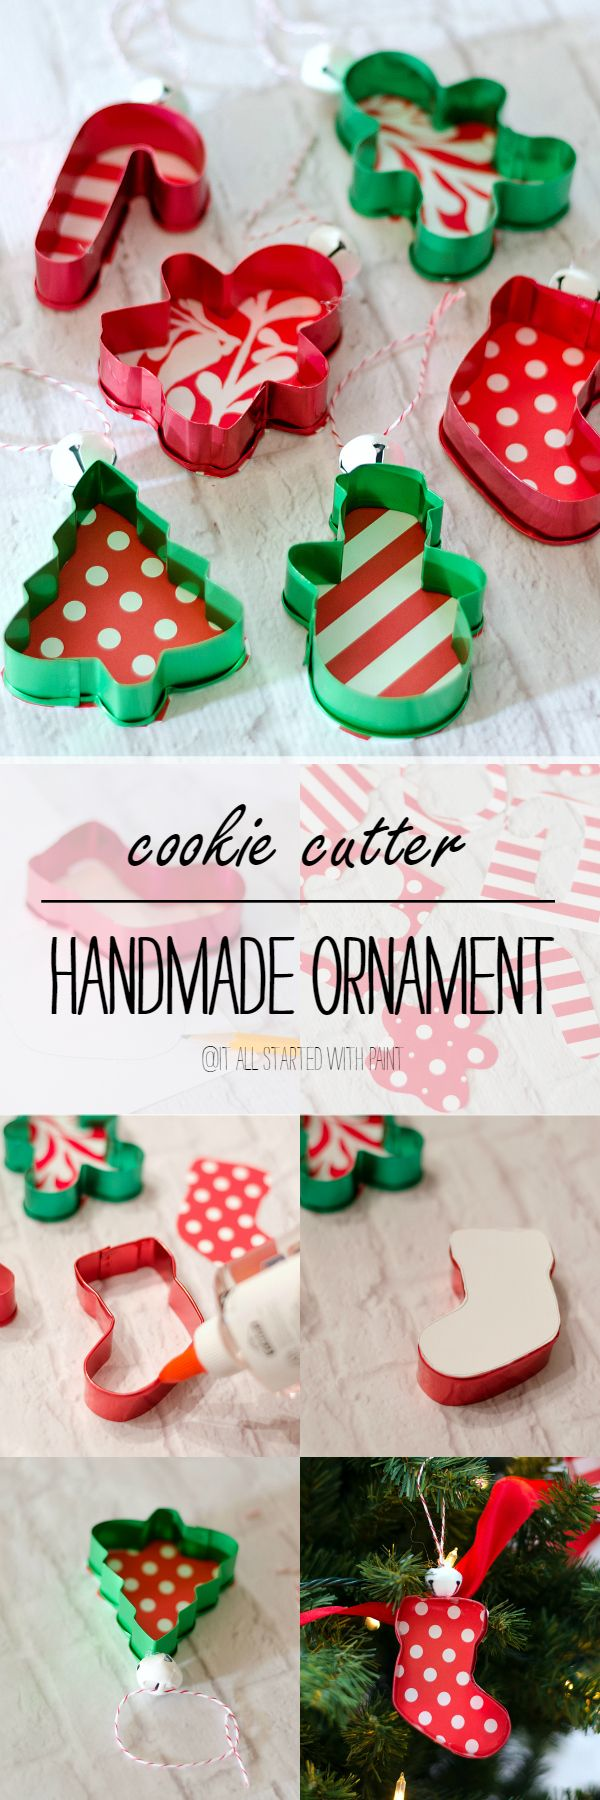 Handmade Ornament Ideas: Cookie Cutter Christmas Tree Ornament Idea using Craft Paper